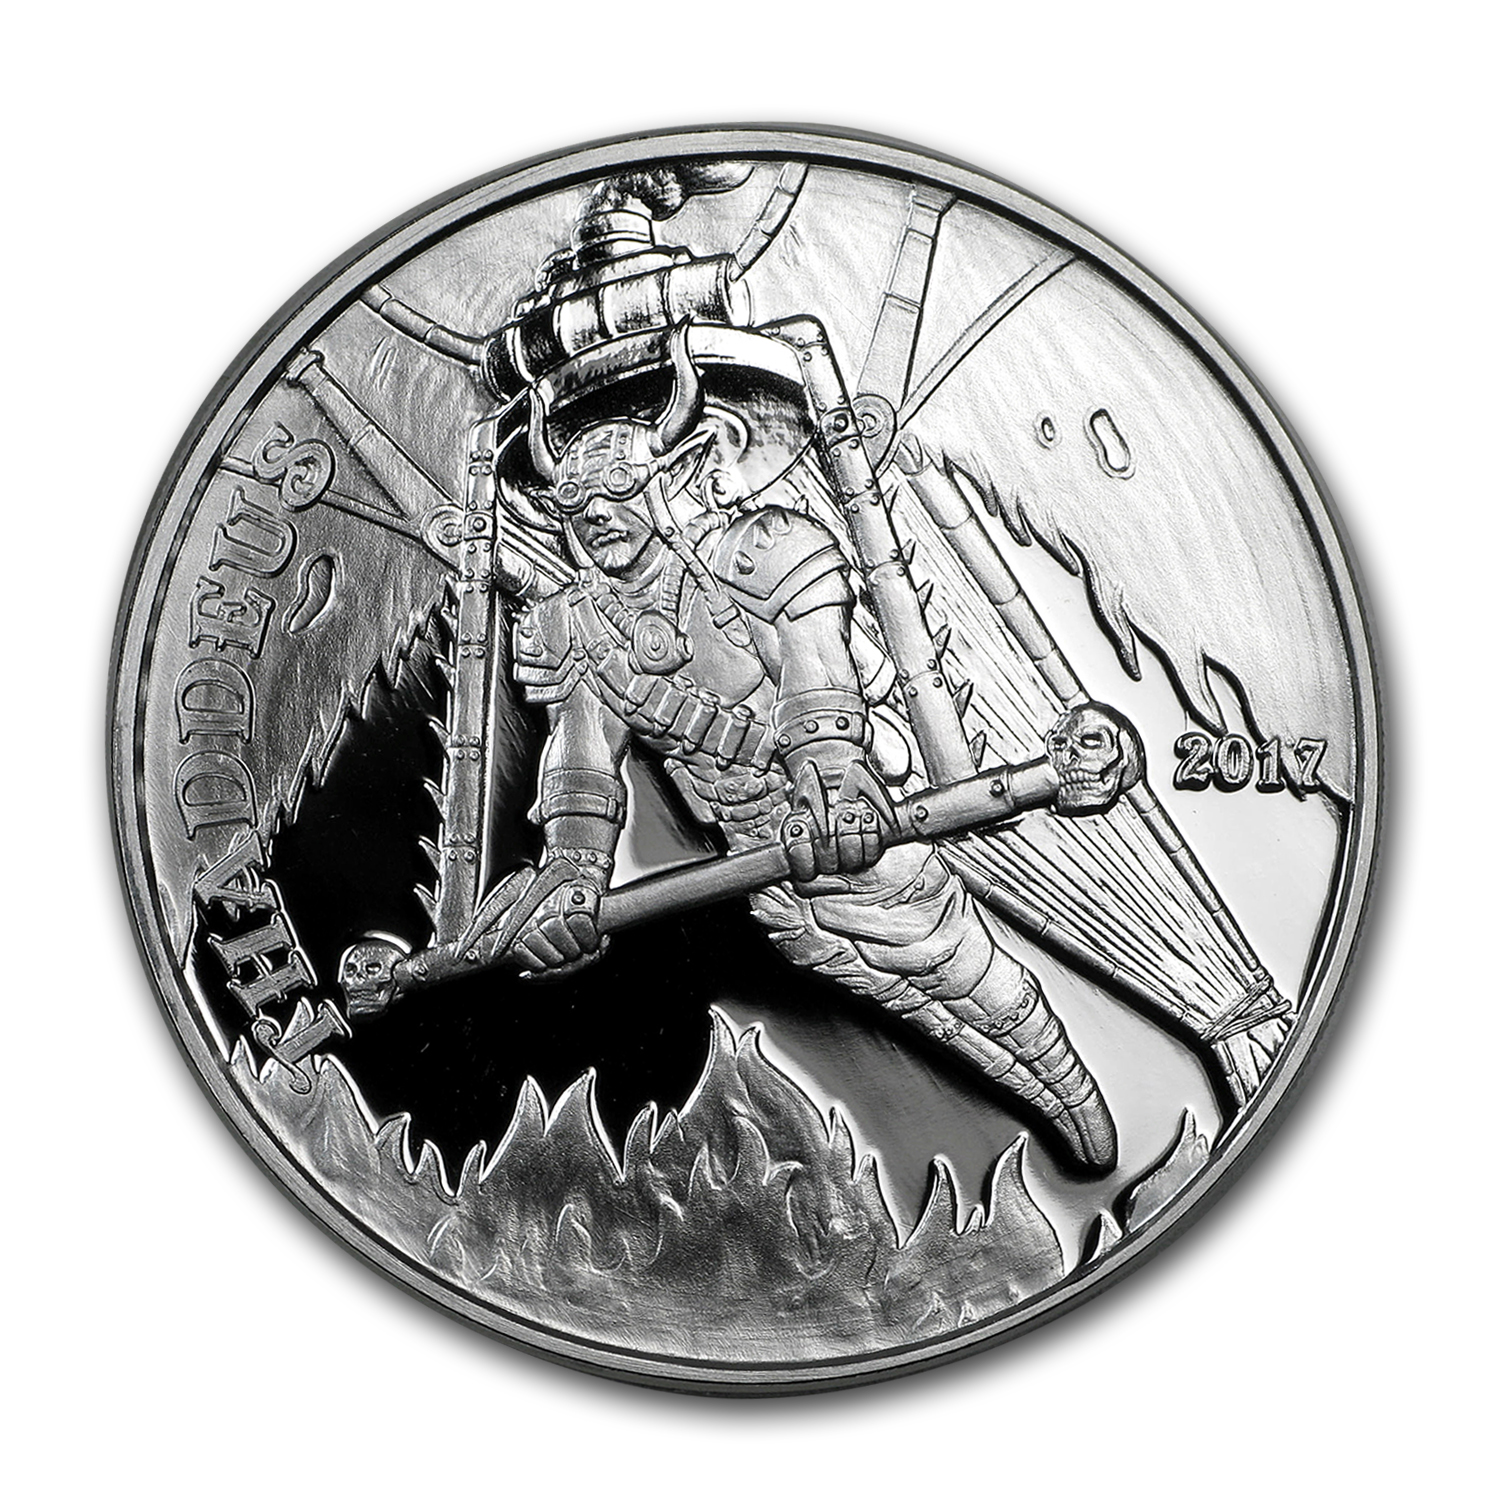 1 oz Silver Proof Round - Angels & Demons Series (Thaddeus)